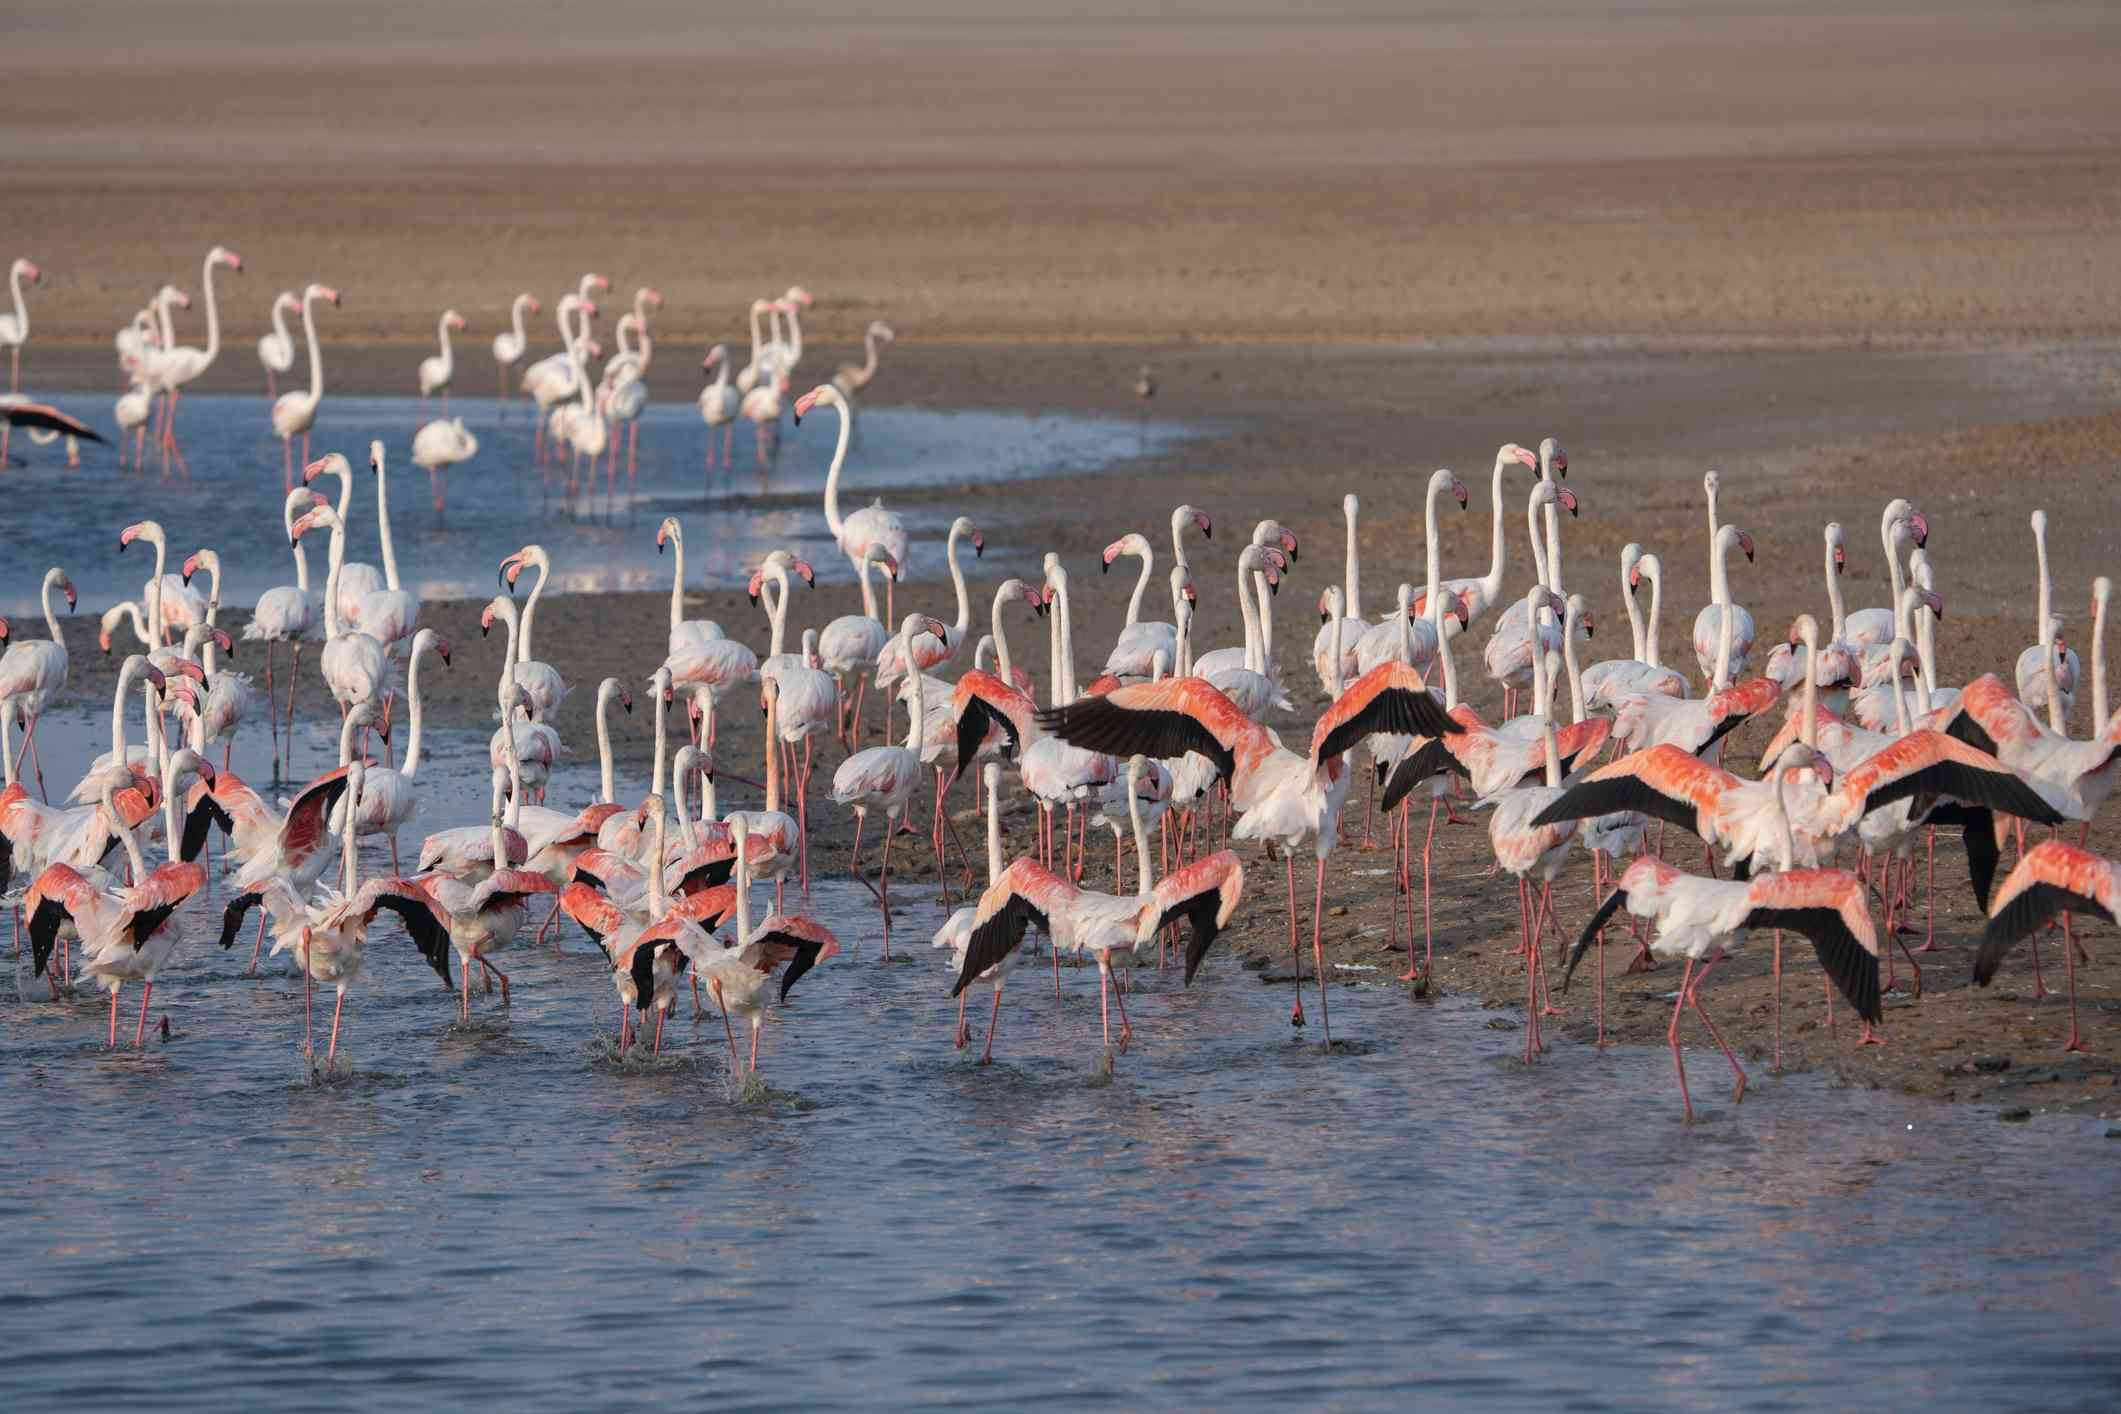 a flock of pink lesser flamingos with black-tipped feathers standing in the wetlands area of Kutch